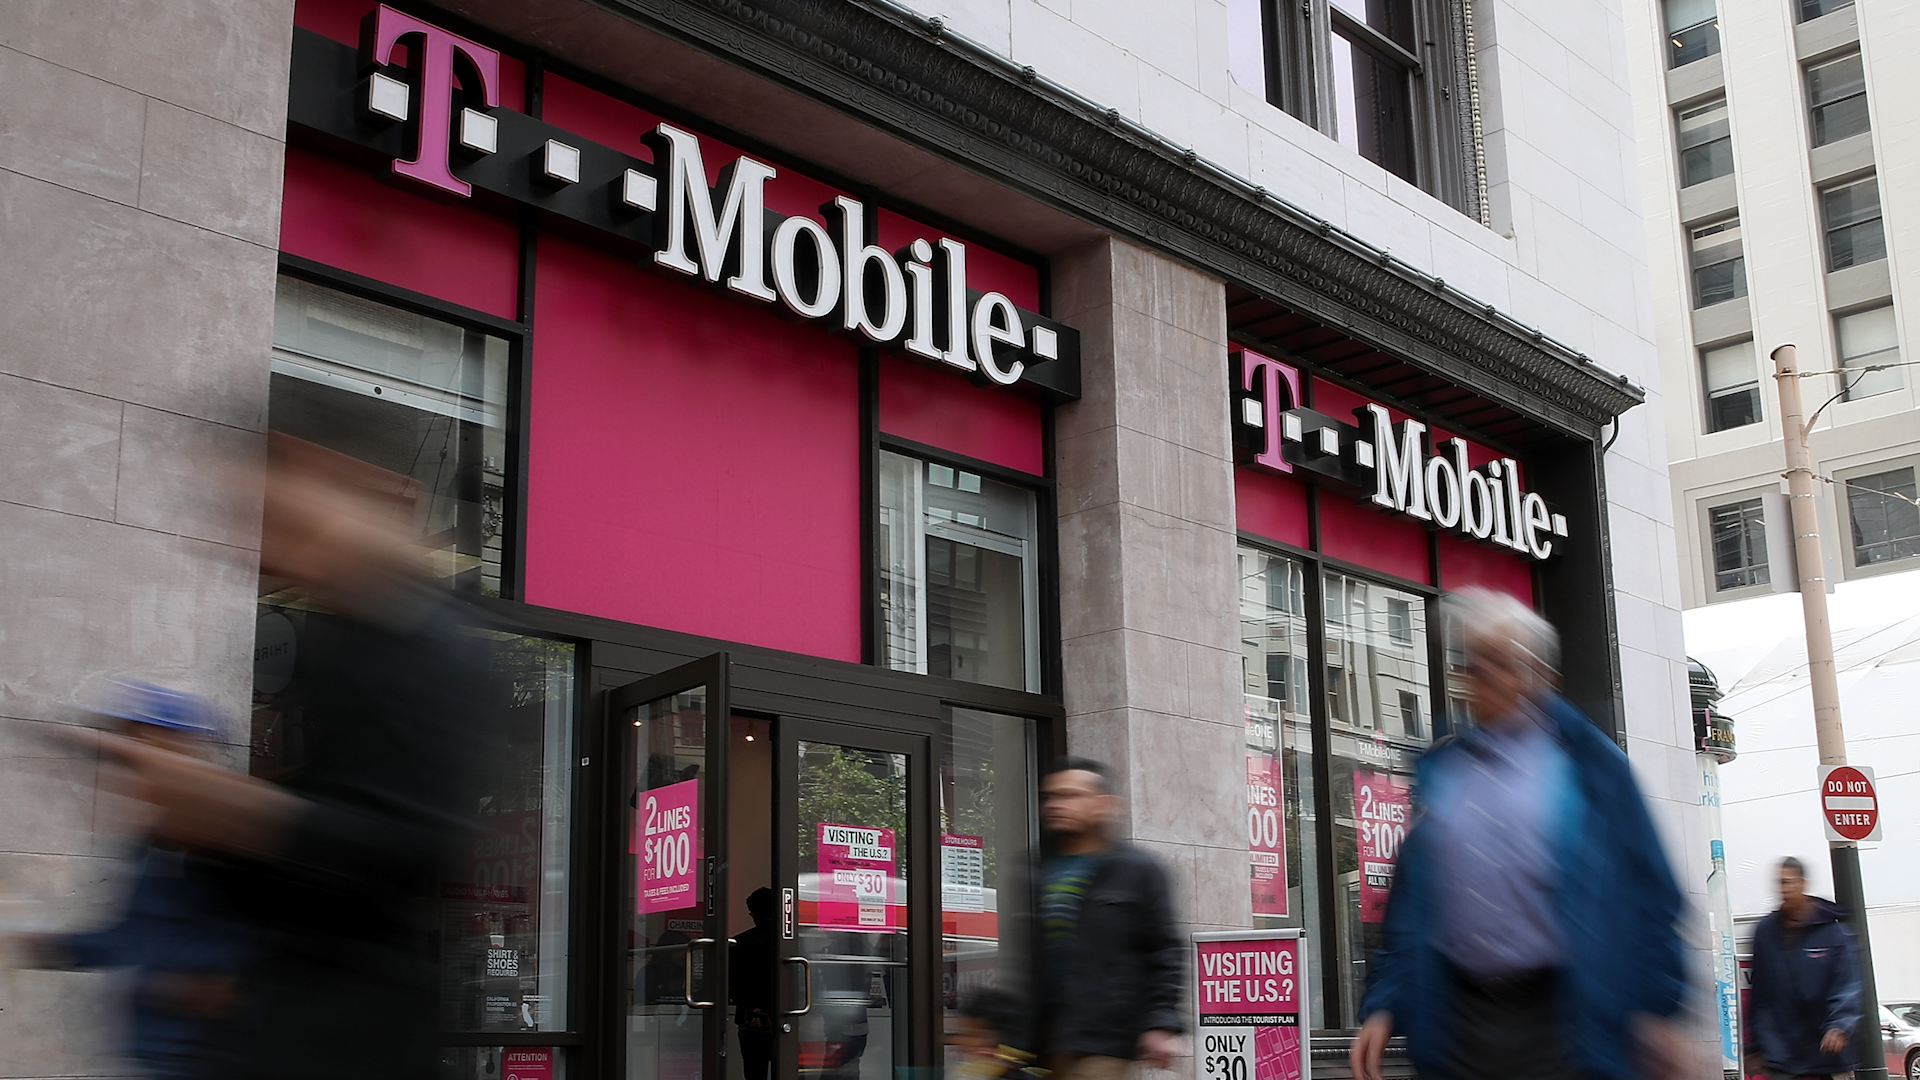 Storefront of a T-Mobile outlet.